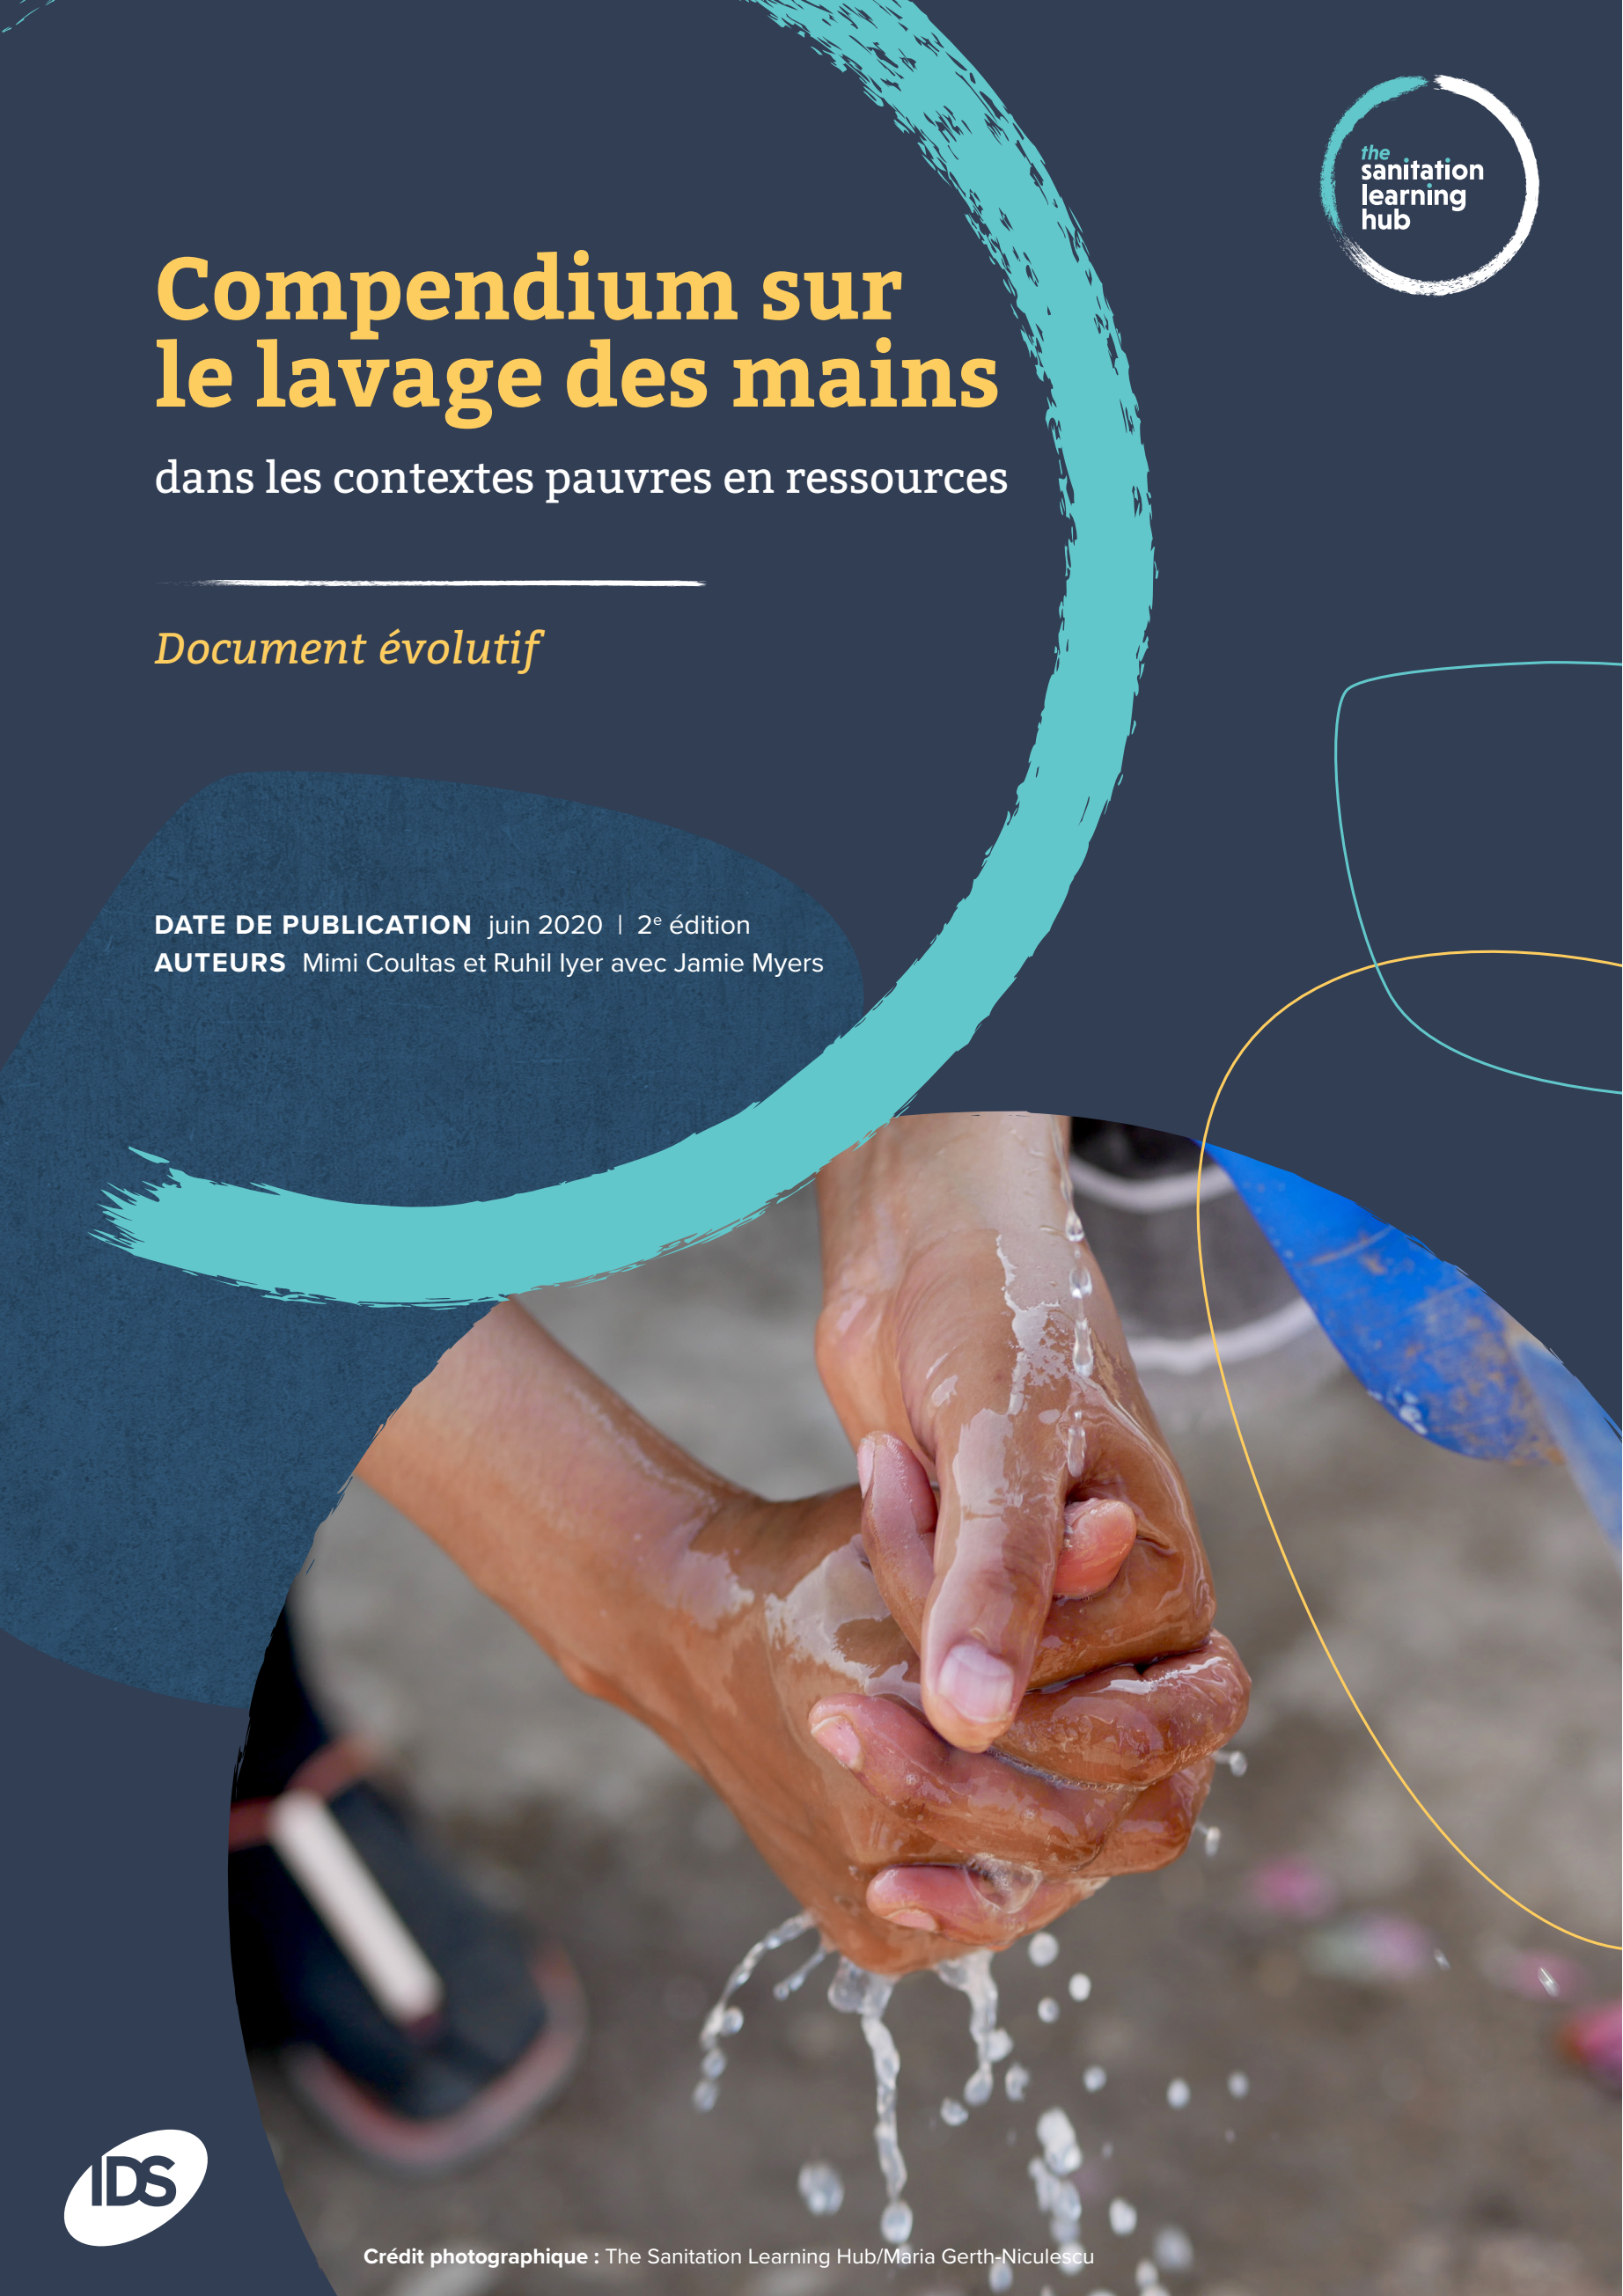 Handwashing Compendium French